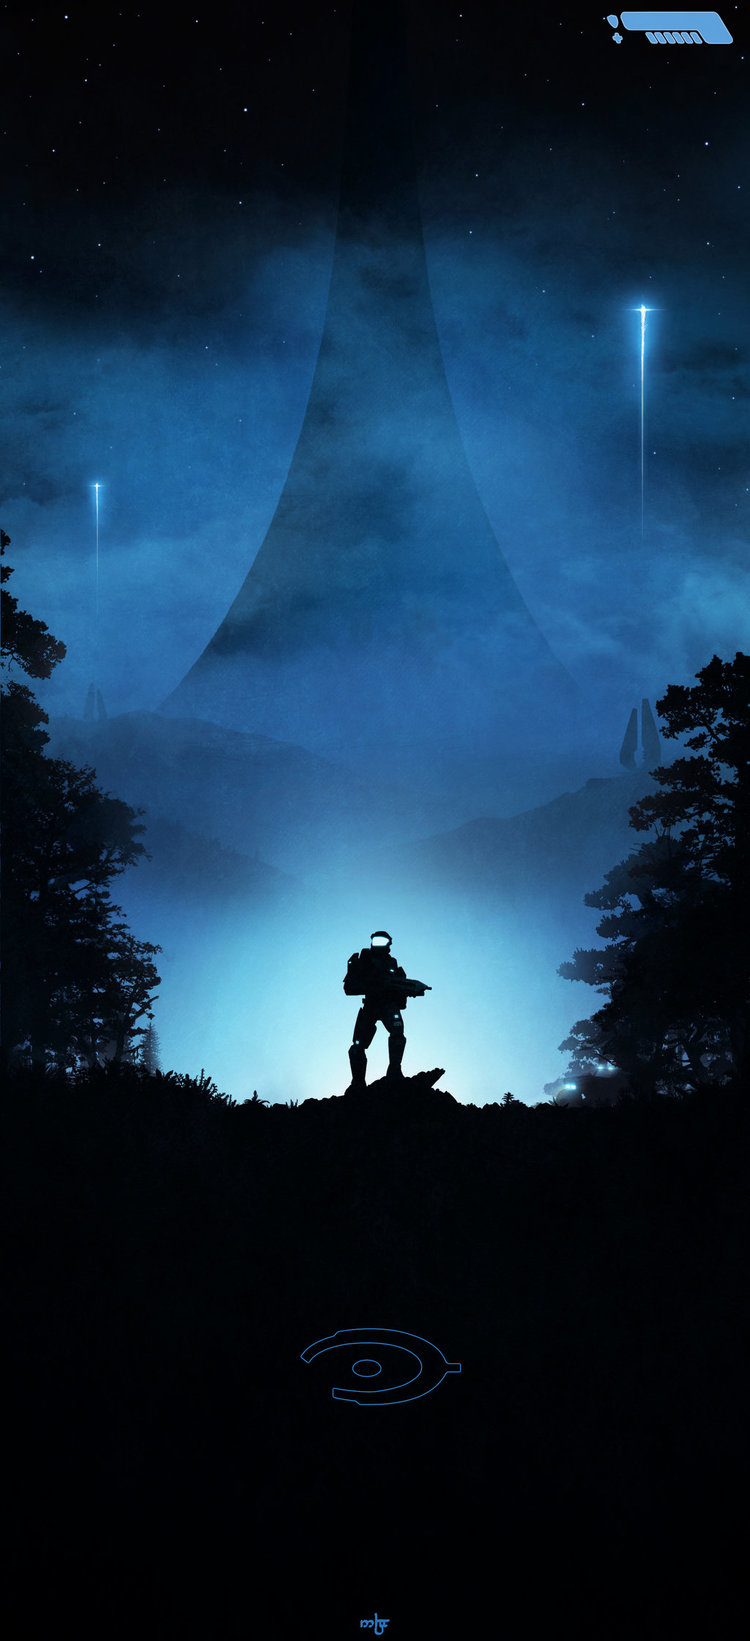 Noble--6_Minimalist_Video_Game_Posters